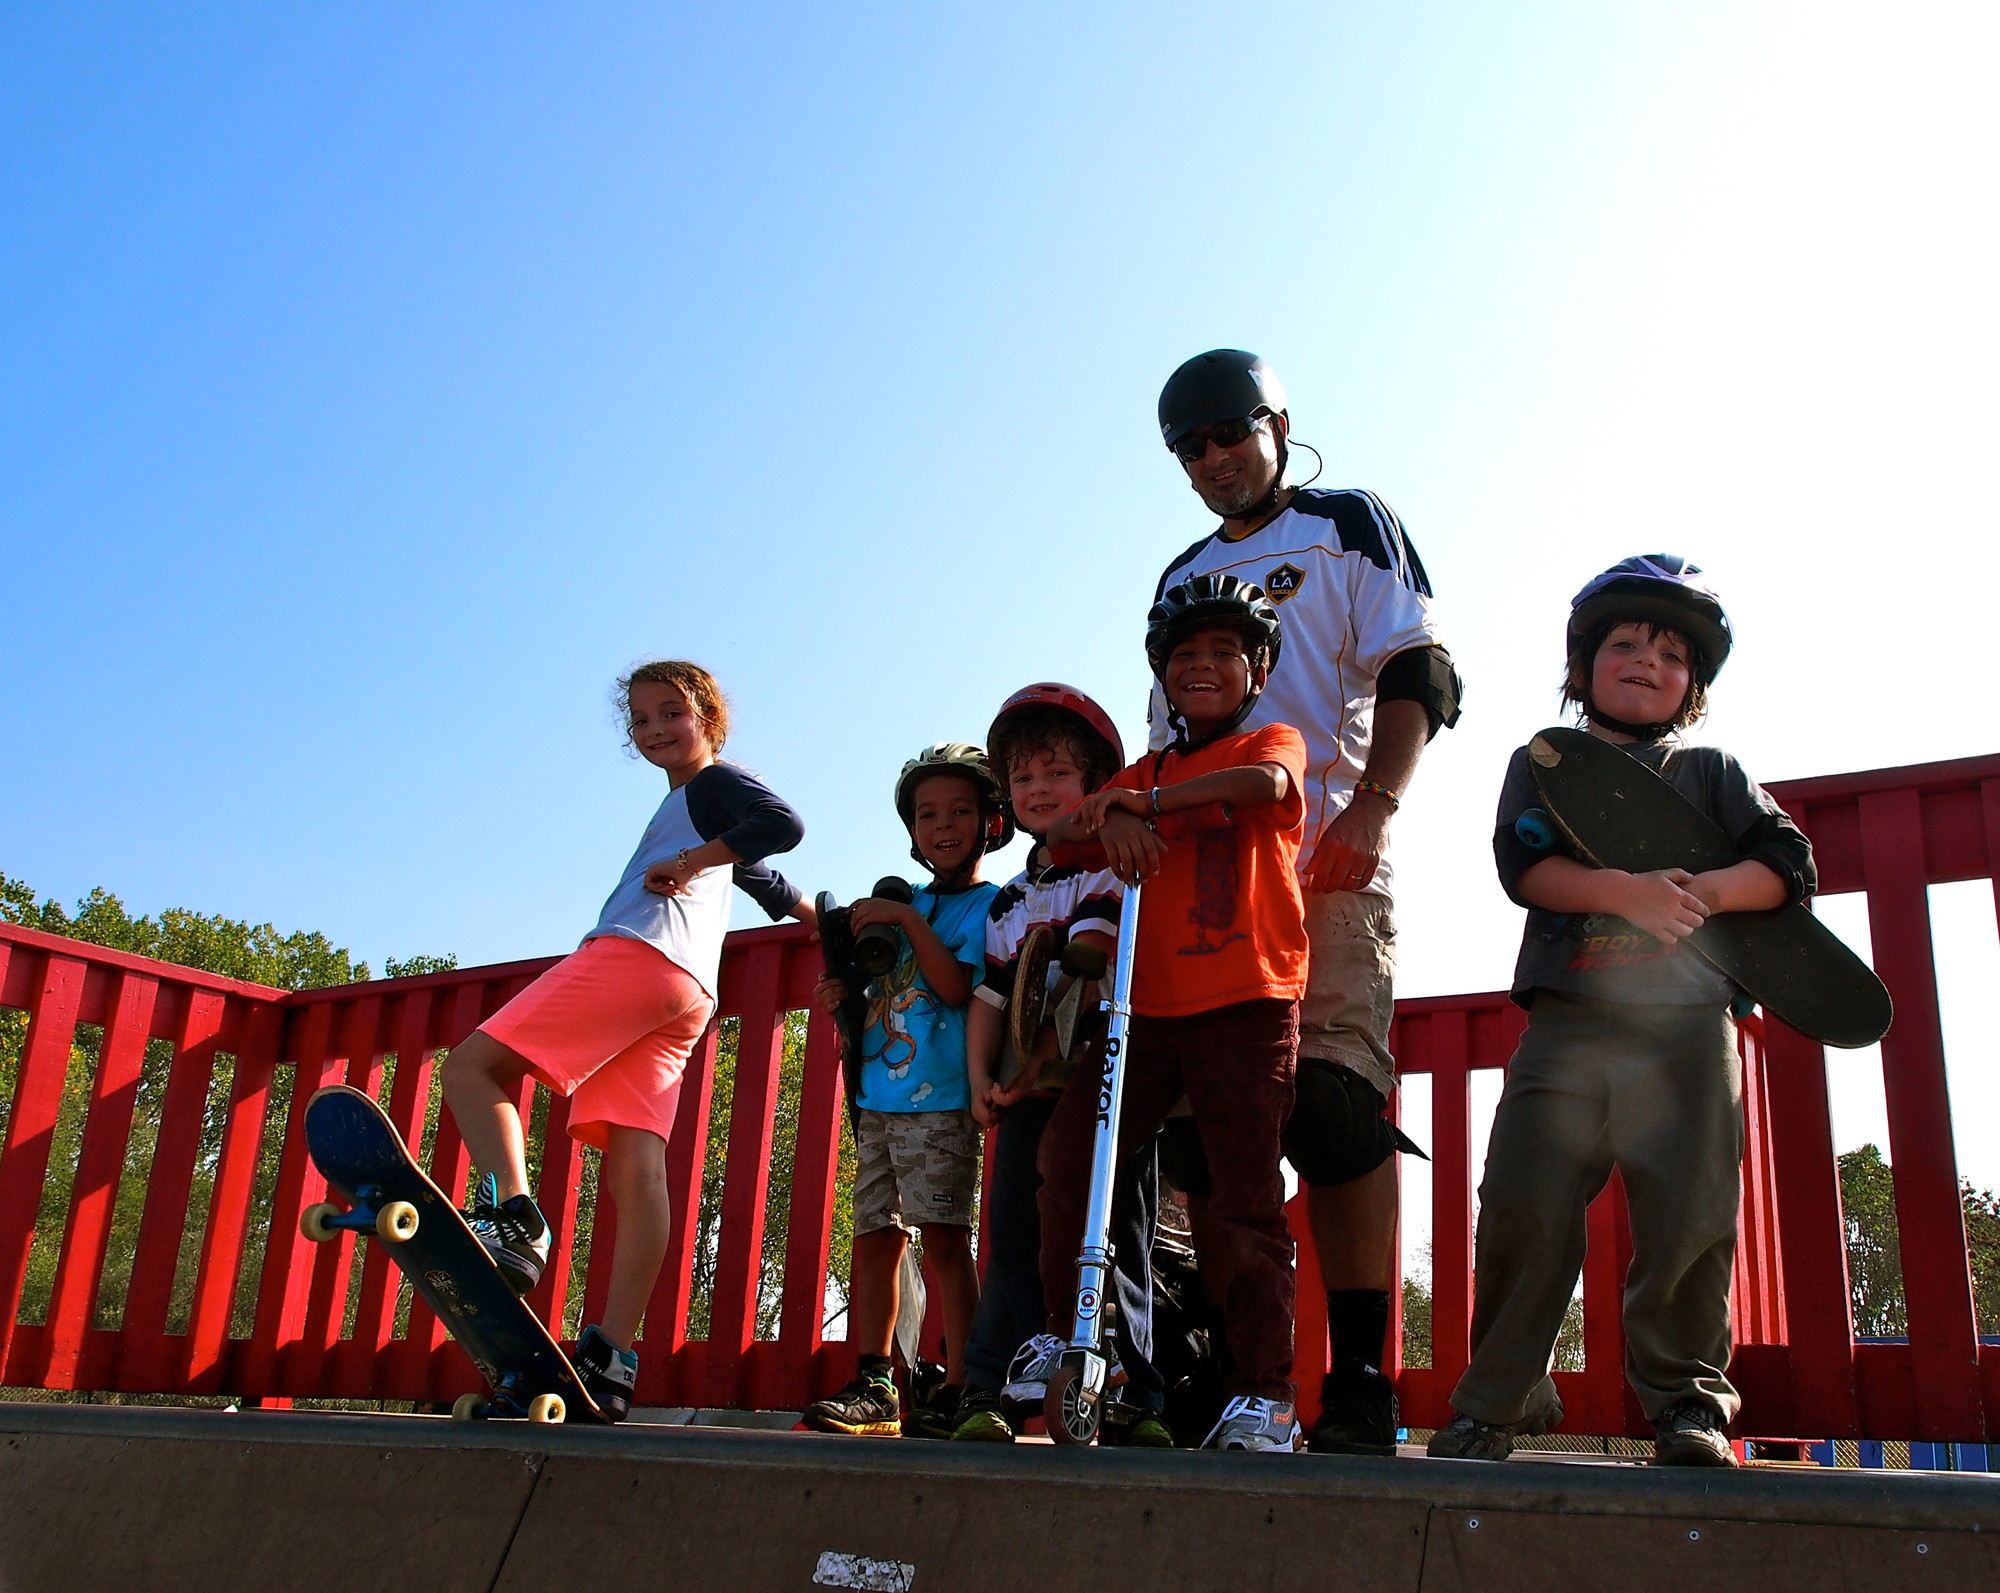 Loeb, 42, a father of three who has rediscovered the joys of skateboarding, brought his kids to the Baldwin skate park recently. From left were Jessica Loeb, Max Connolly, Zachary Loeb, Oliver Connolly and Jacob Loeb.